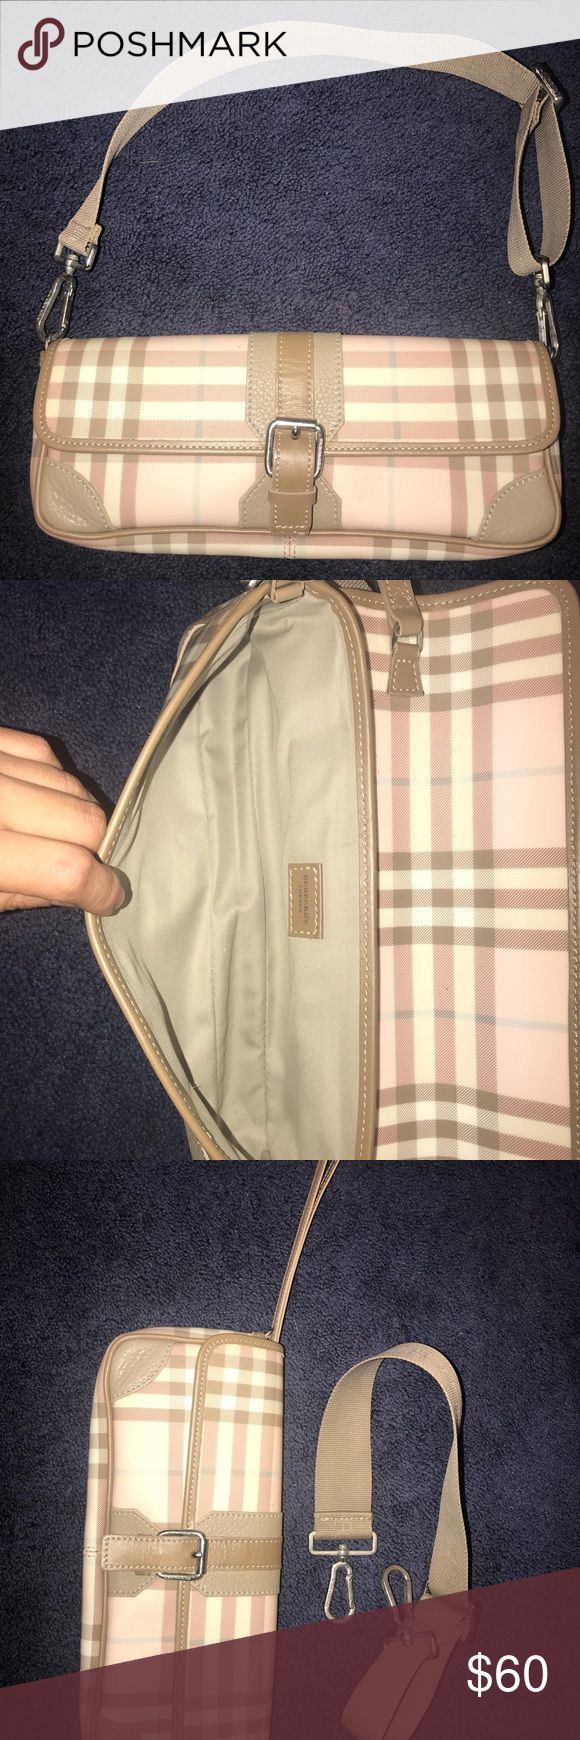 Burberry Burberry clutch Burberry Bags Clutches & Wristlets